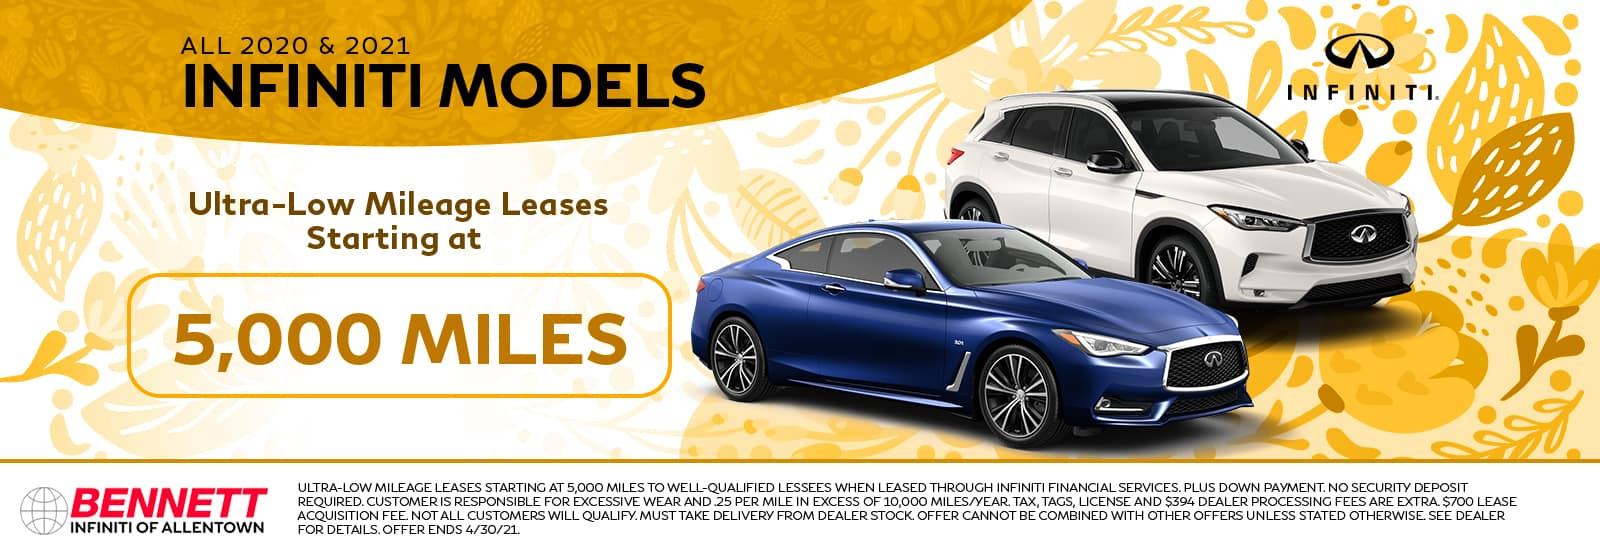 All 2020 & 2021 INFINITI Models - Ultra-low mileage leases starting at 5,000 miles!